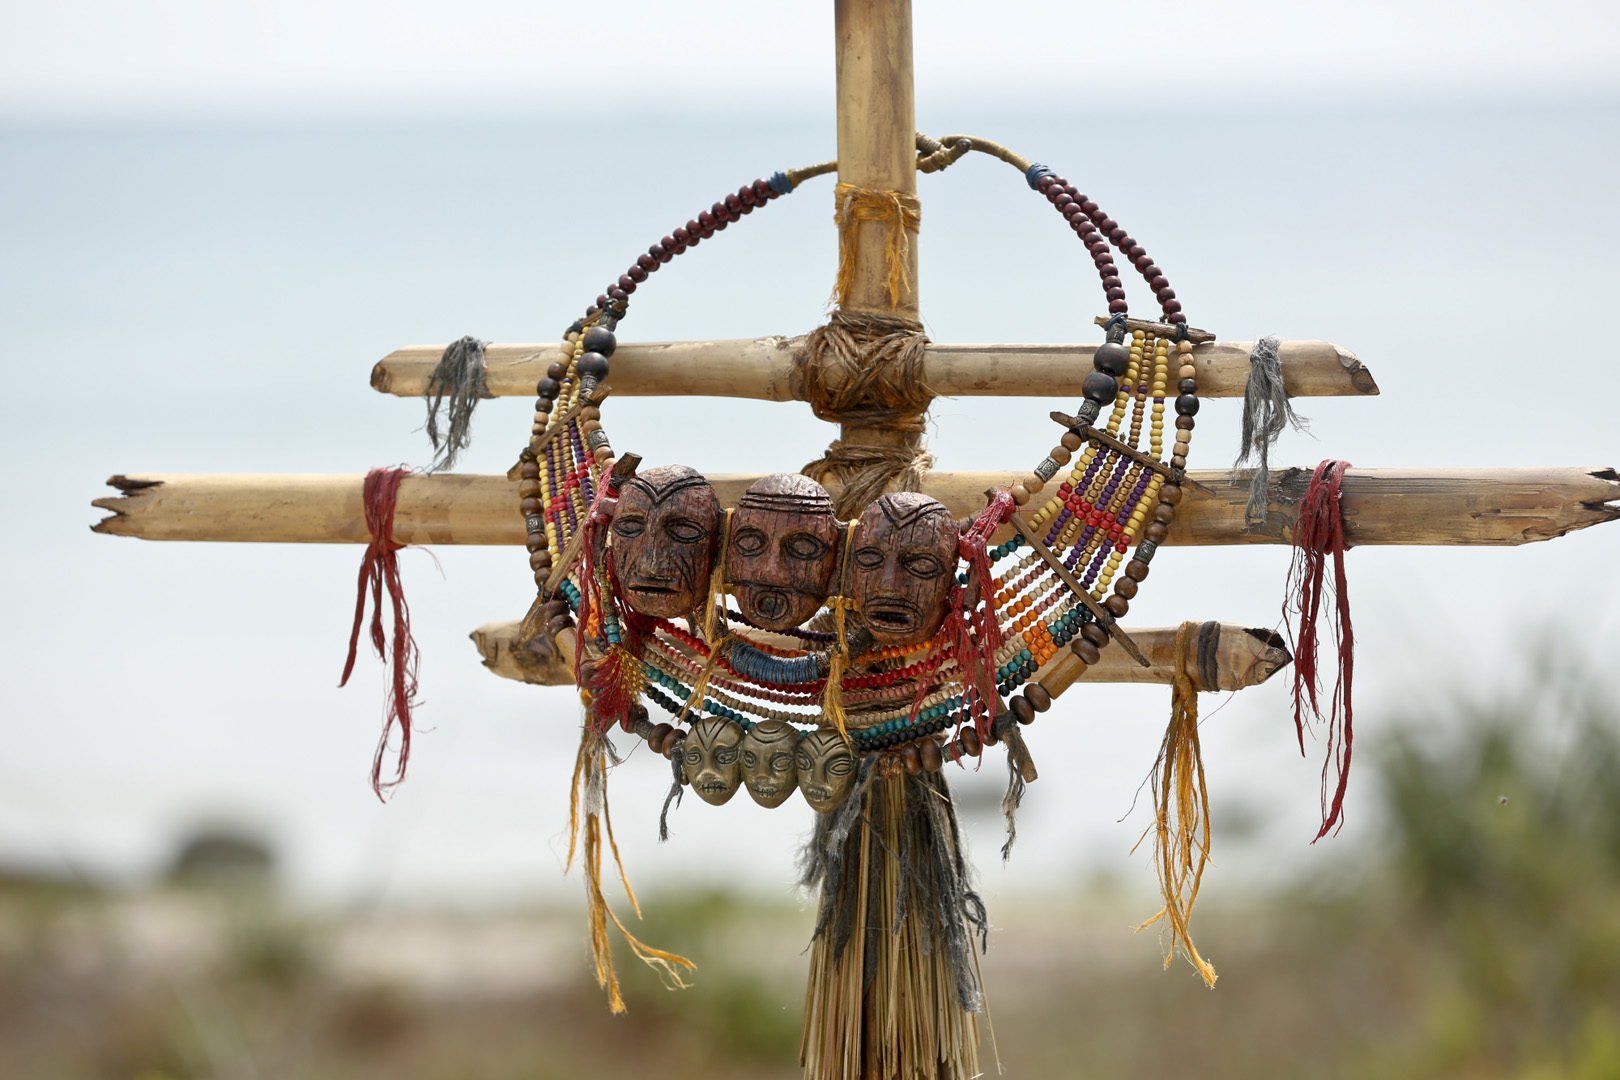 Huzzah! The coveted Individual Immunity necklace makes its debut.